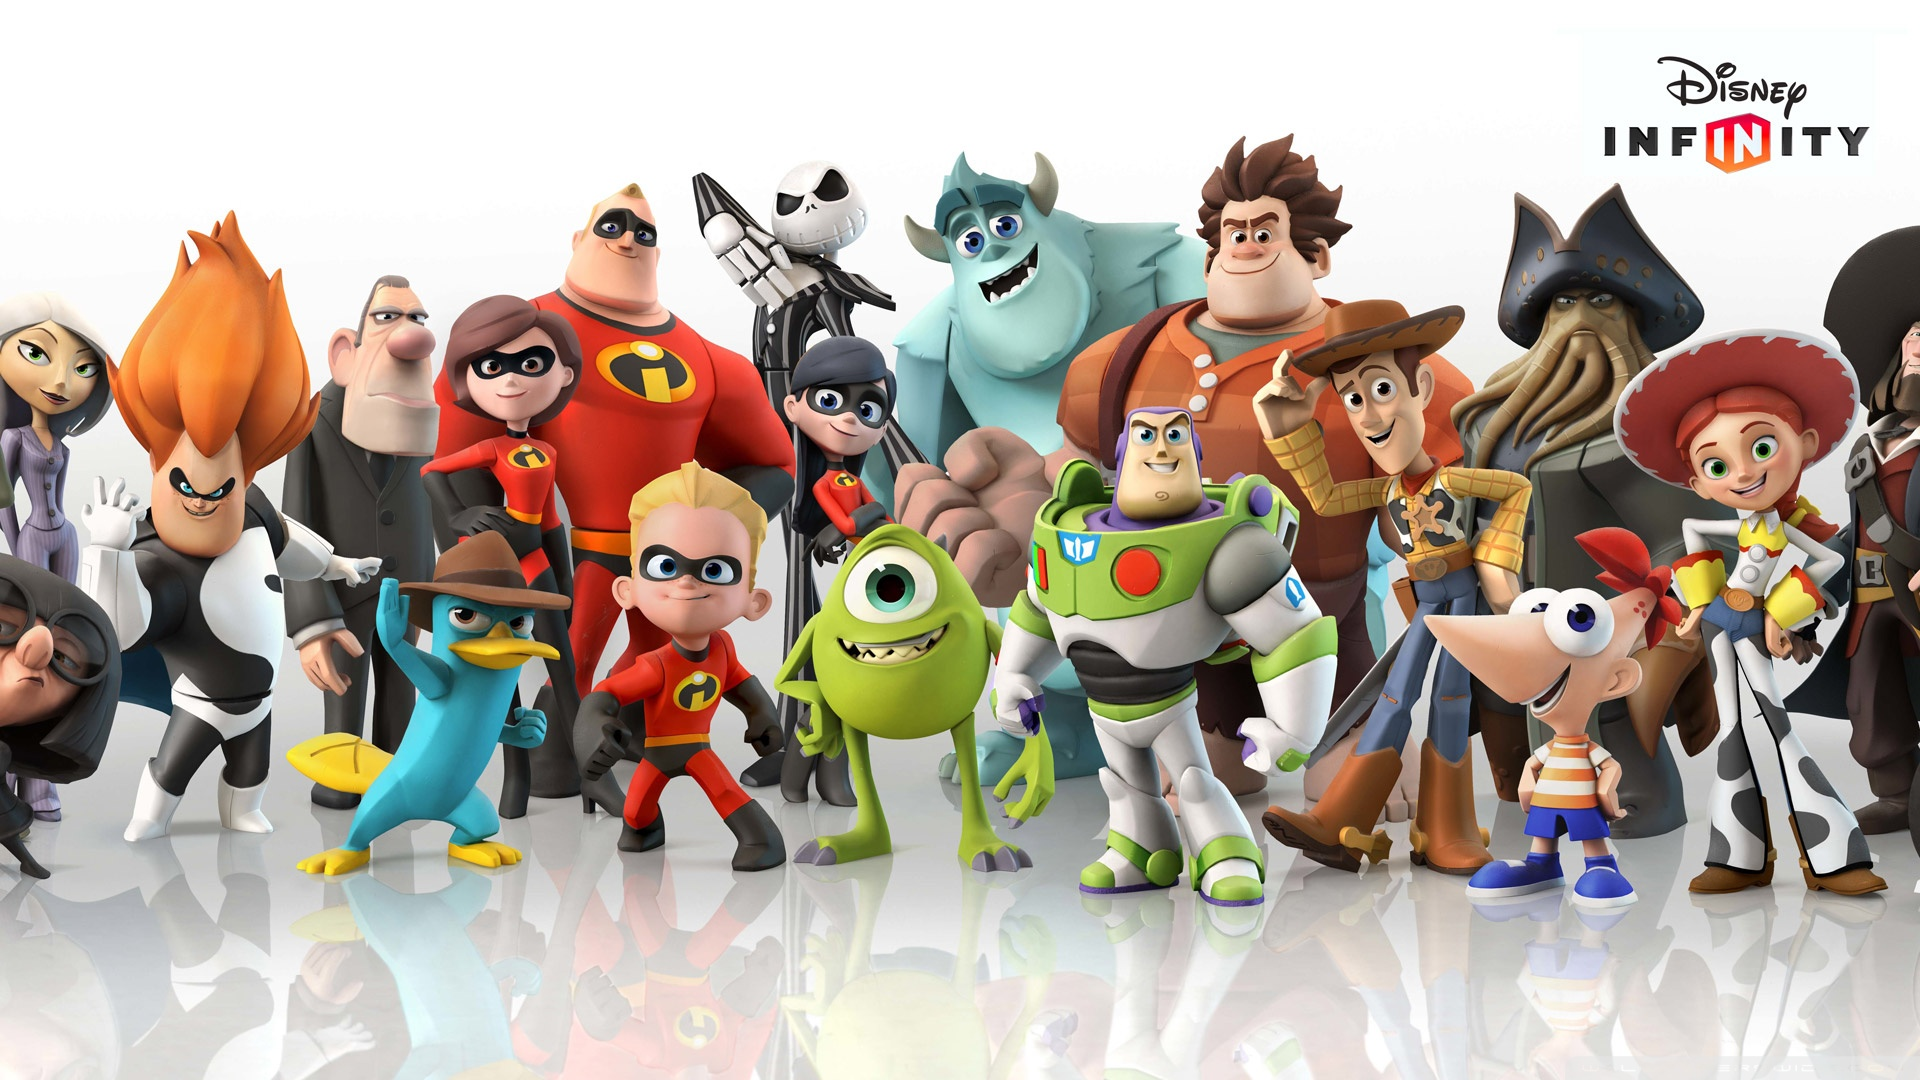 Disney Infinity Wallpaper